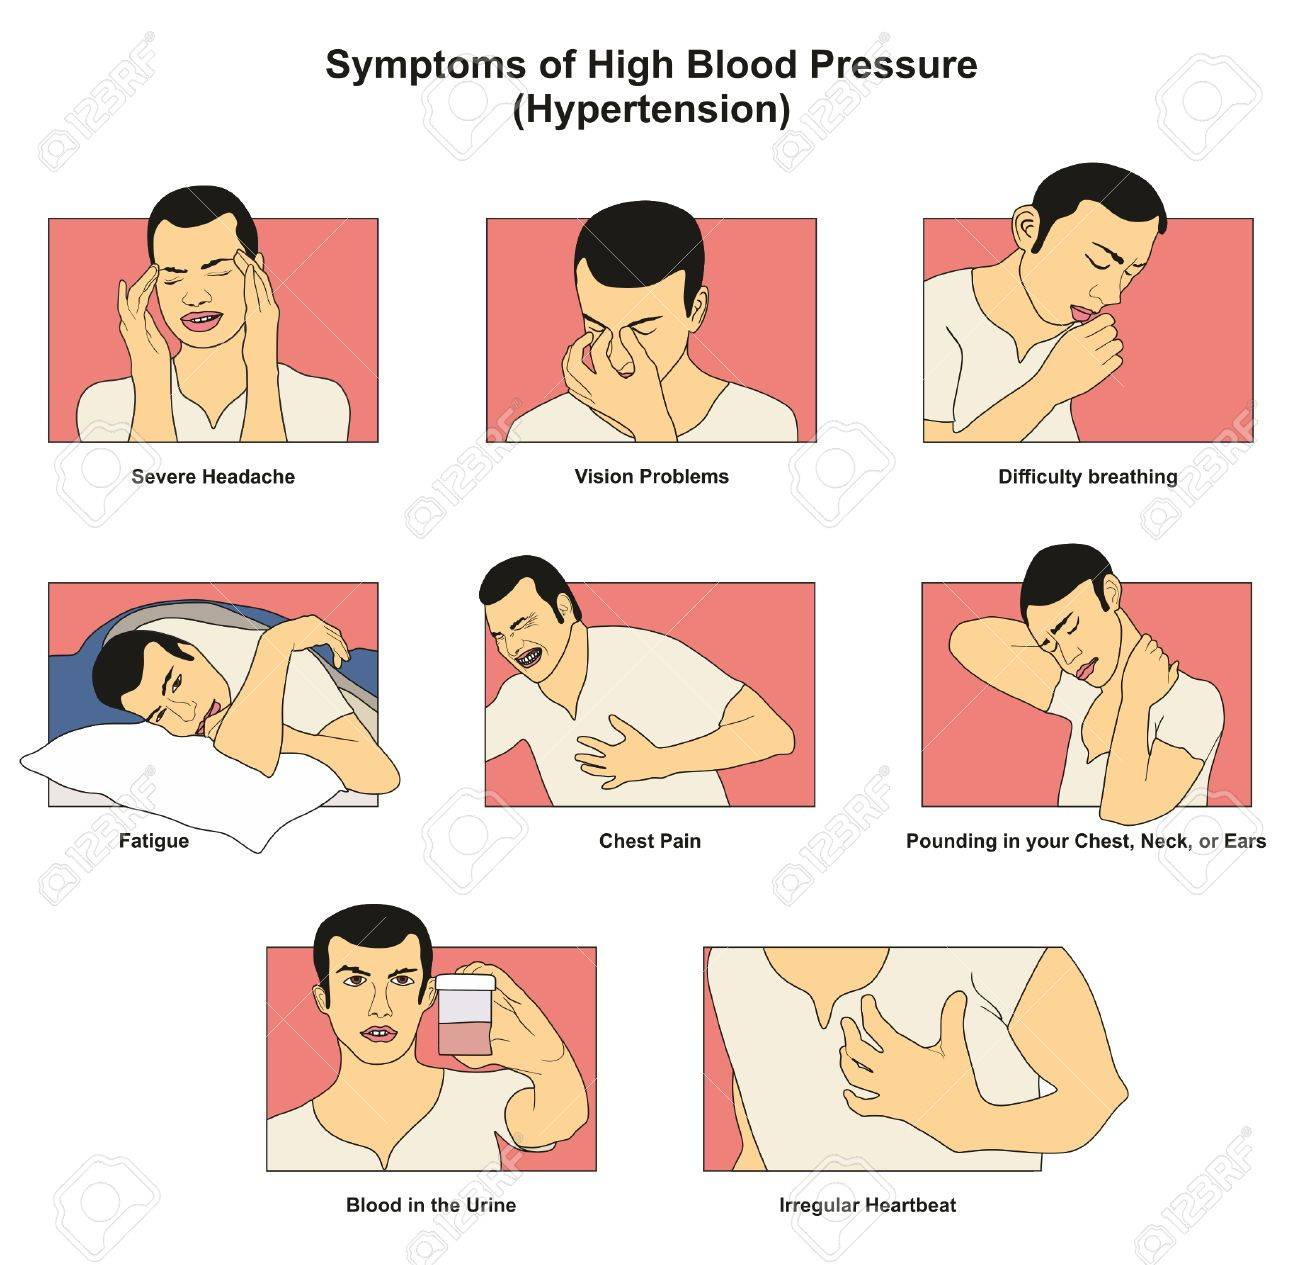 hight resolution of symptoms of high blood pressure hypertension infographic diagram signs risks including fatigue headache vision problem chest